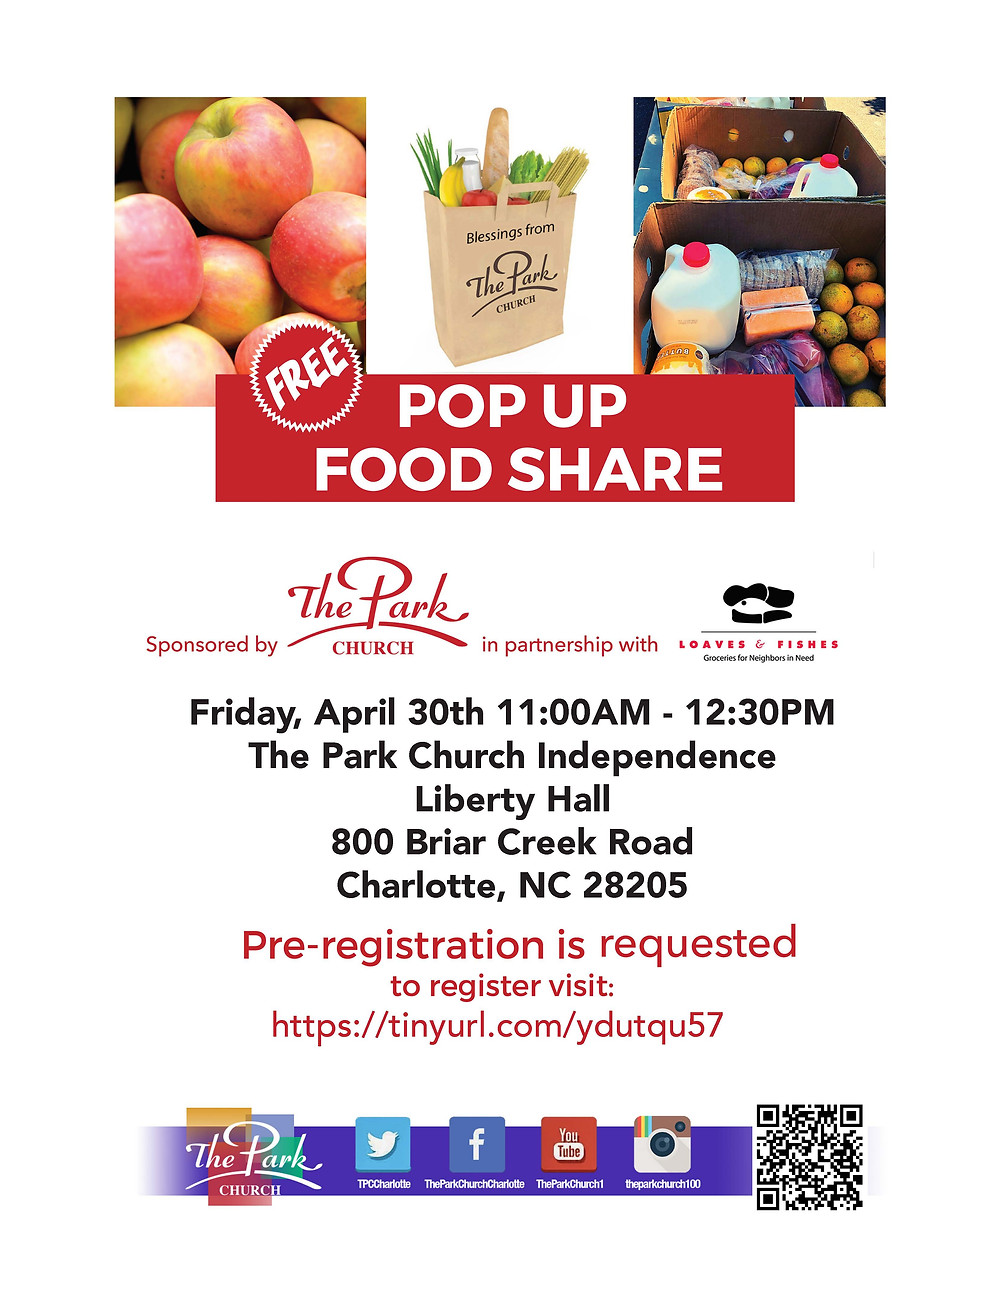 Pop Up Food Share April 30 2021 Loaves & Fishes, The Park Church